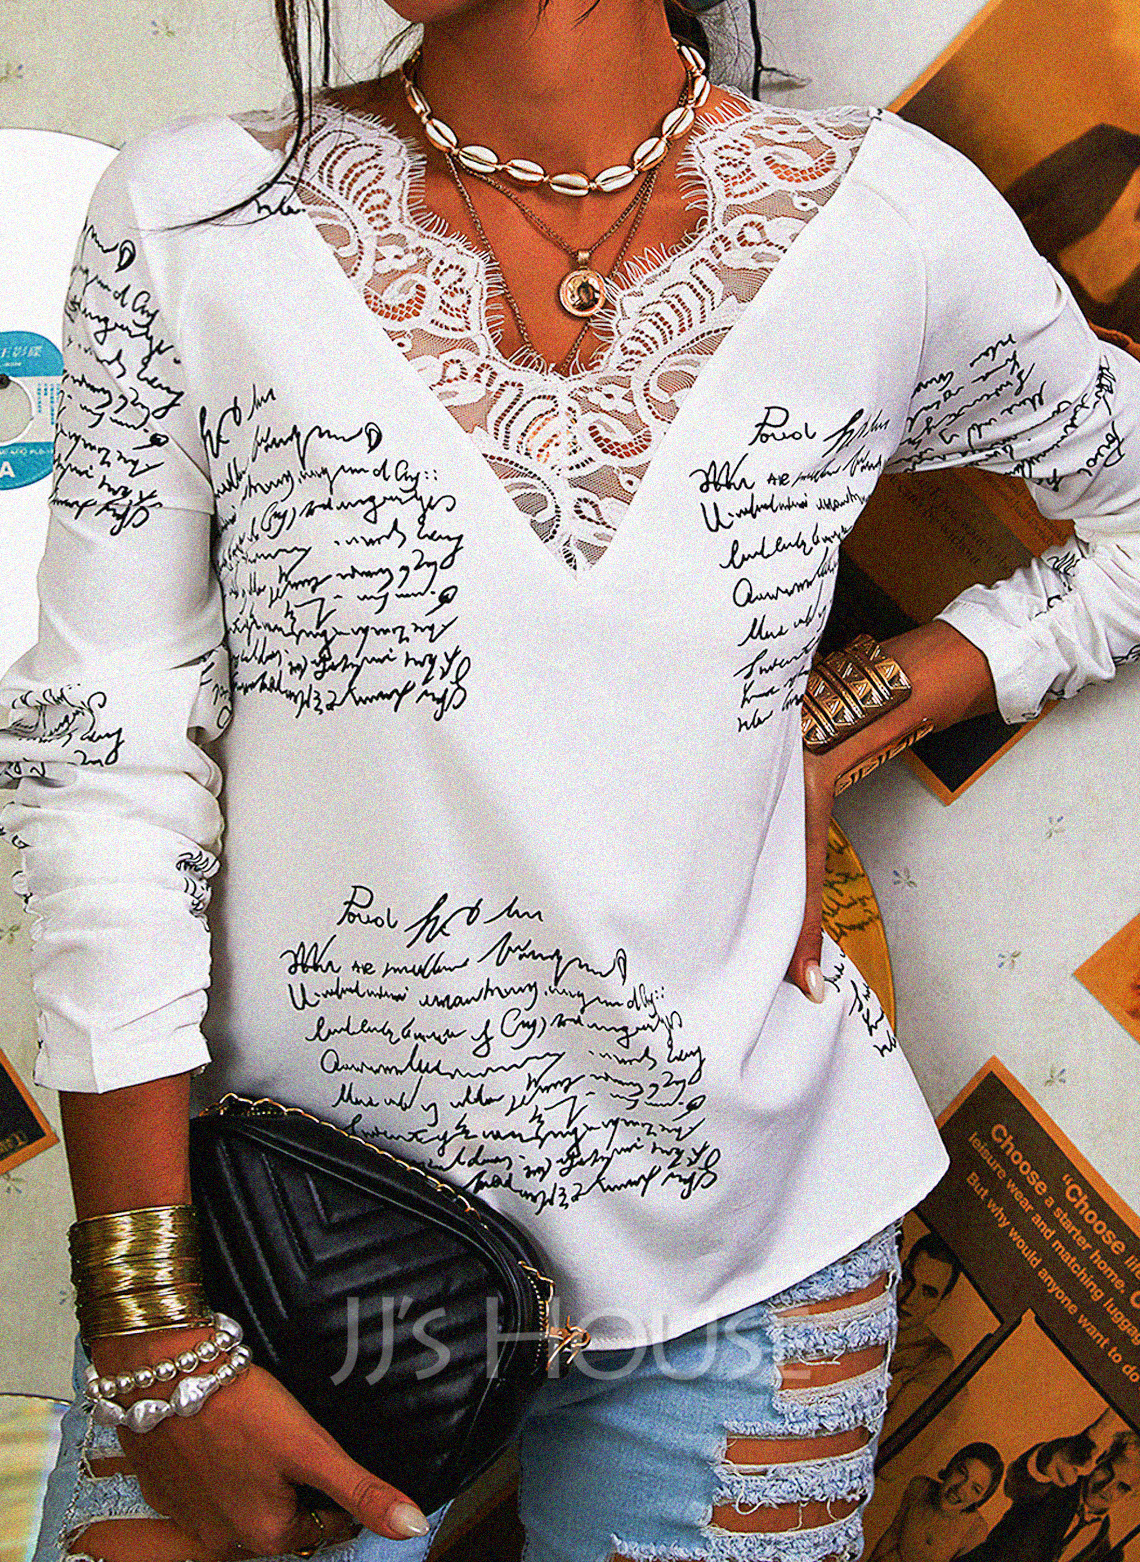 Regular Cotton Blends V-Neck Figure Lace Print 3XL L S M XL XXL Blouses